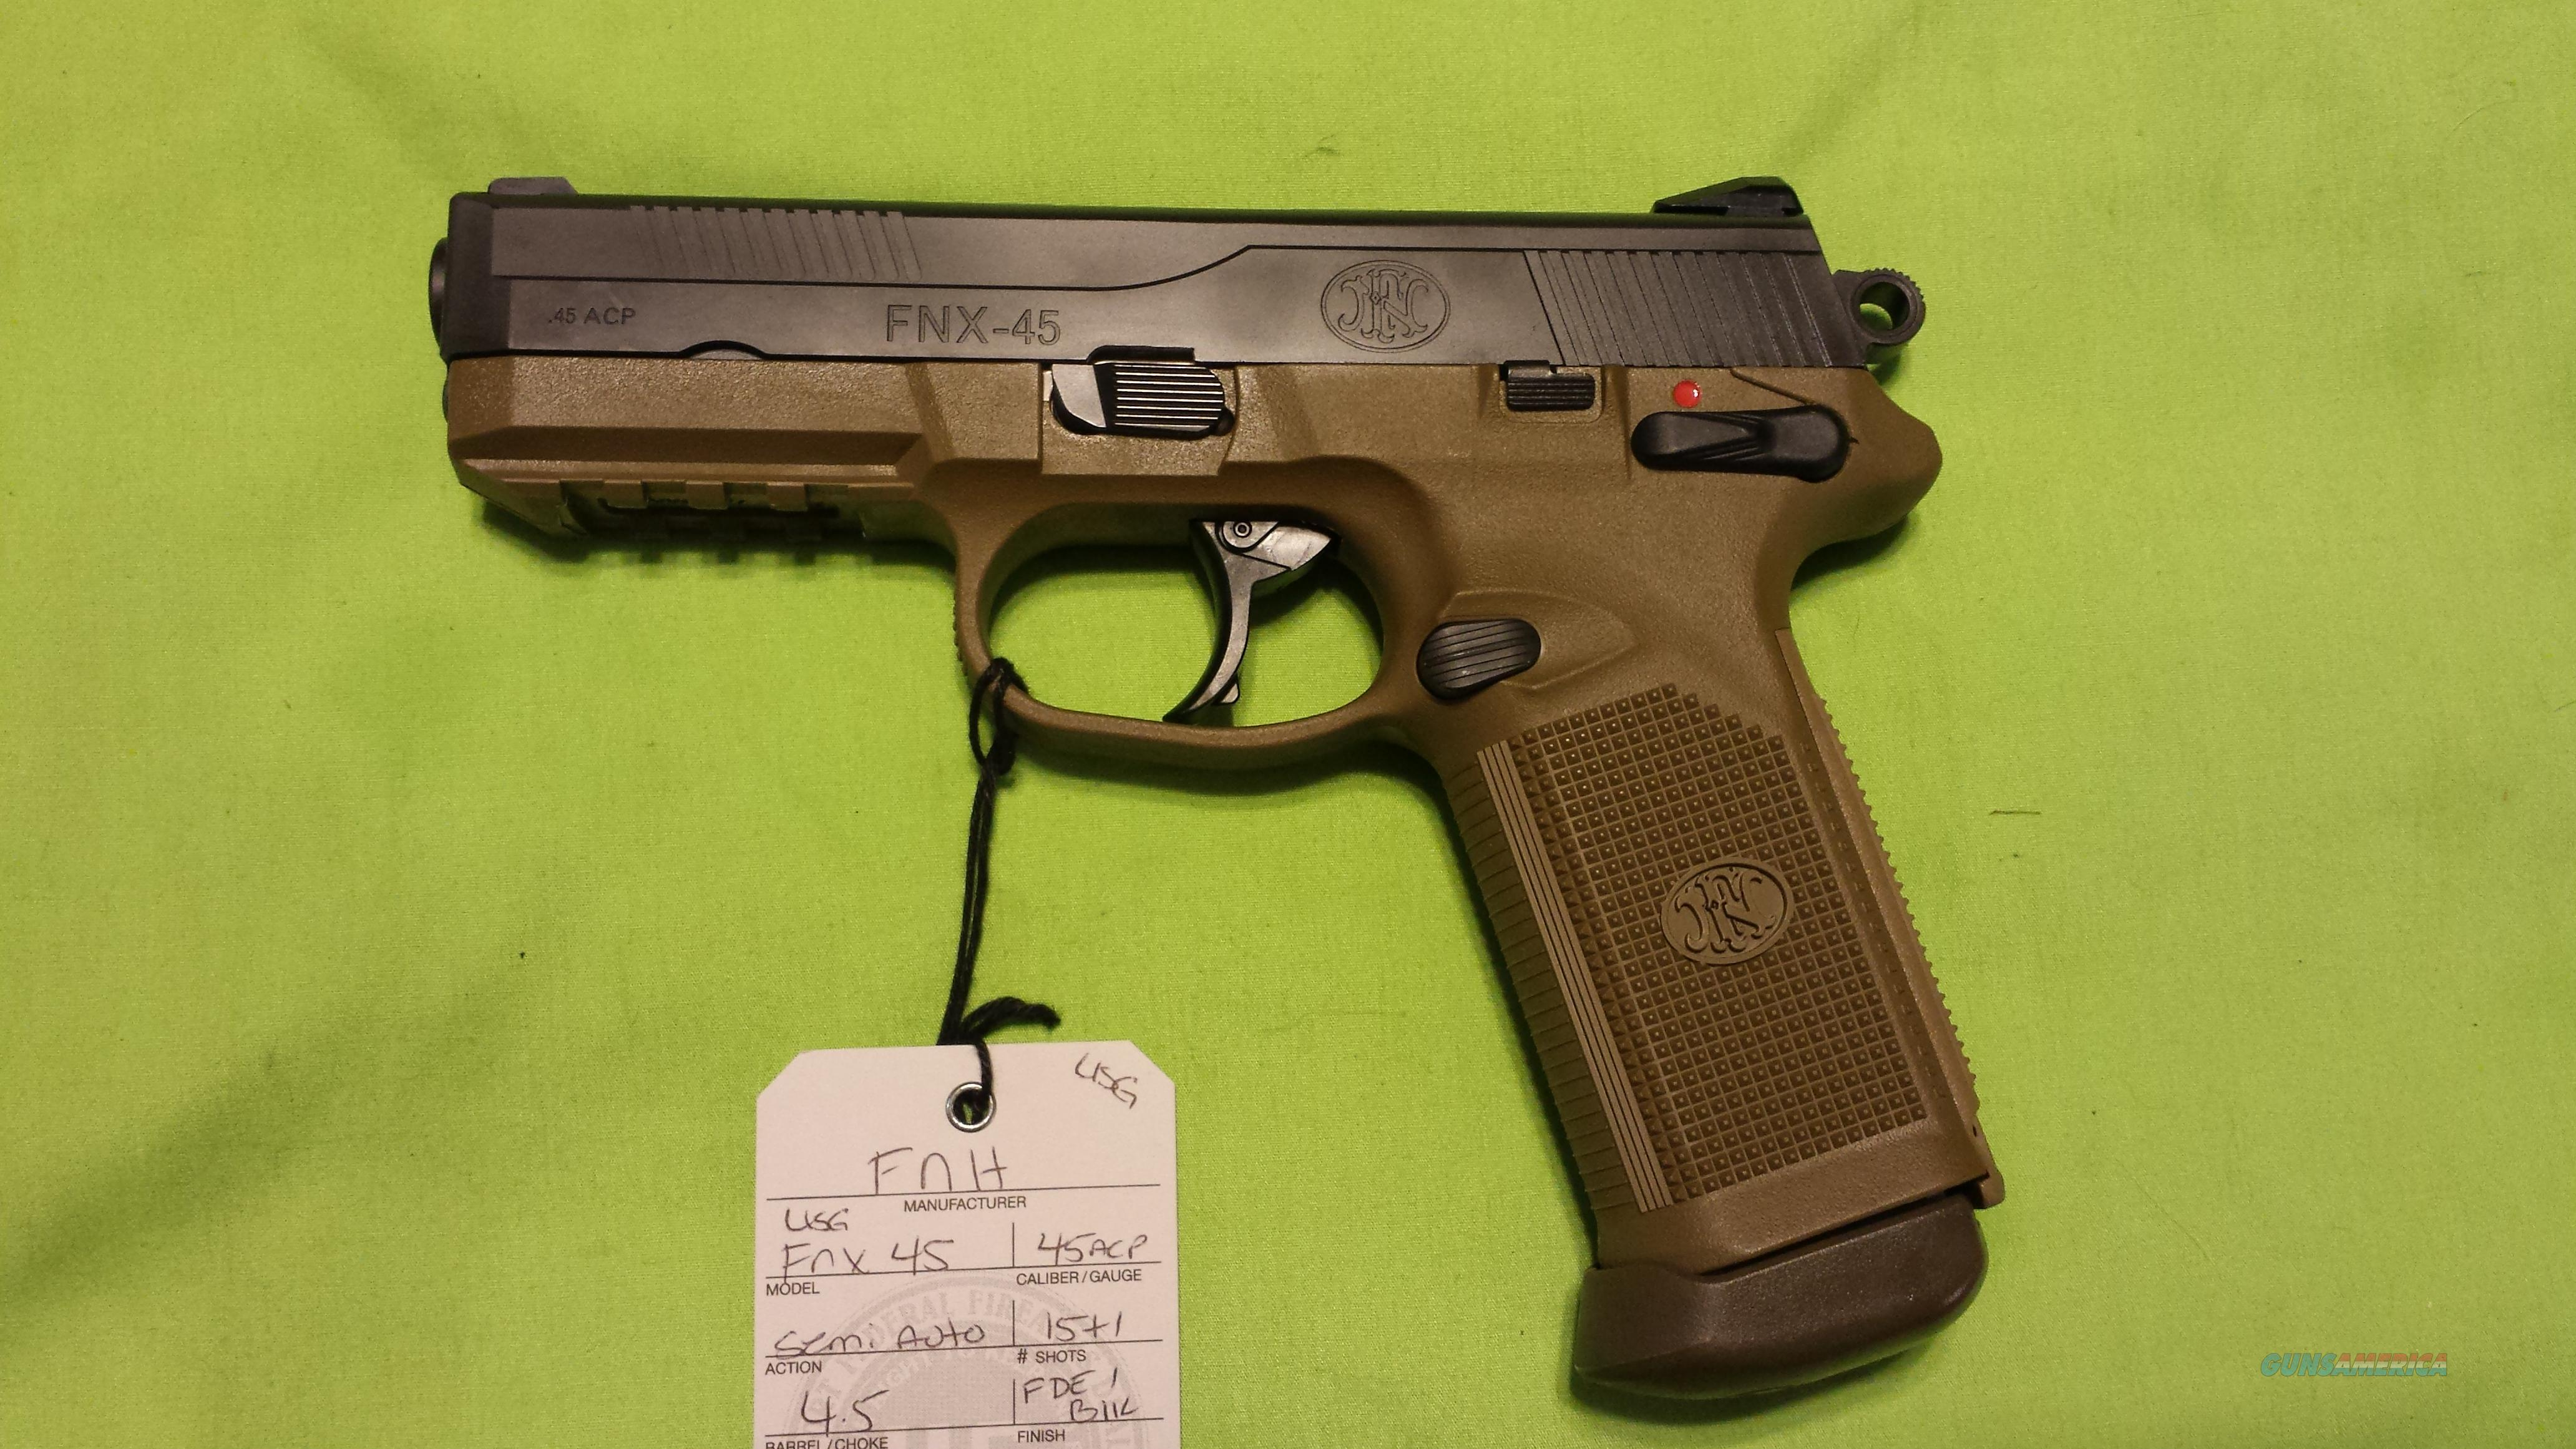 FNH FN FNX 45 USG 45ACP 15RD FDE 3 MAGS  Guns > Pistols > FNH - Fabrique Nationale (FN) Pistols > FNX